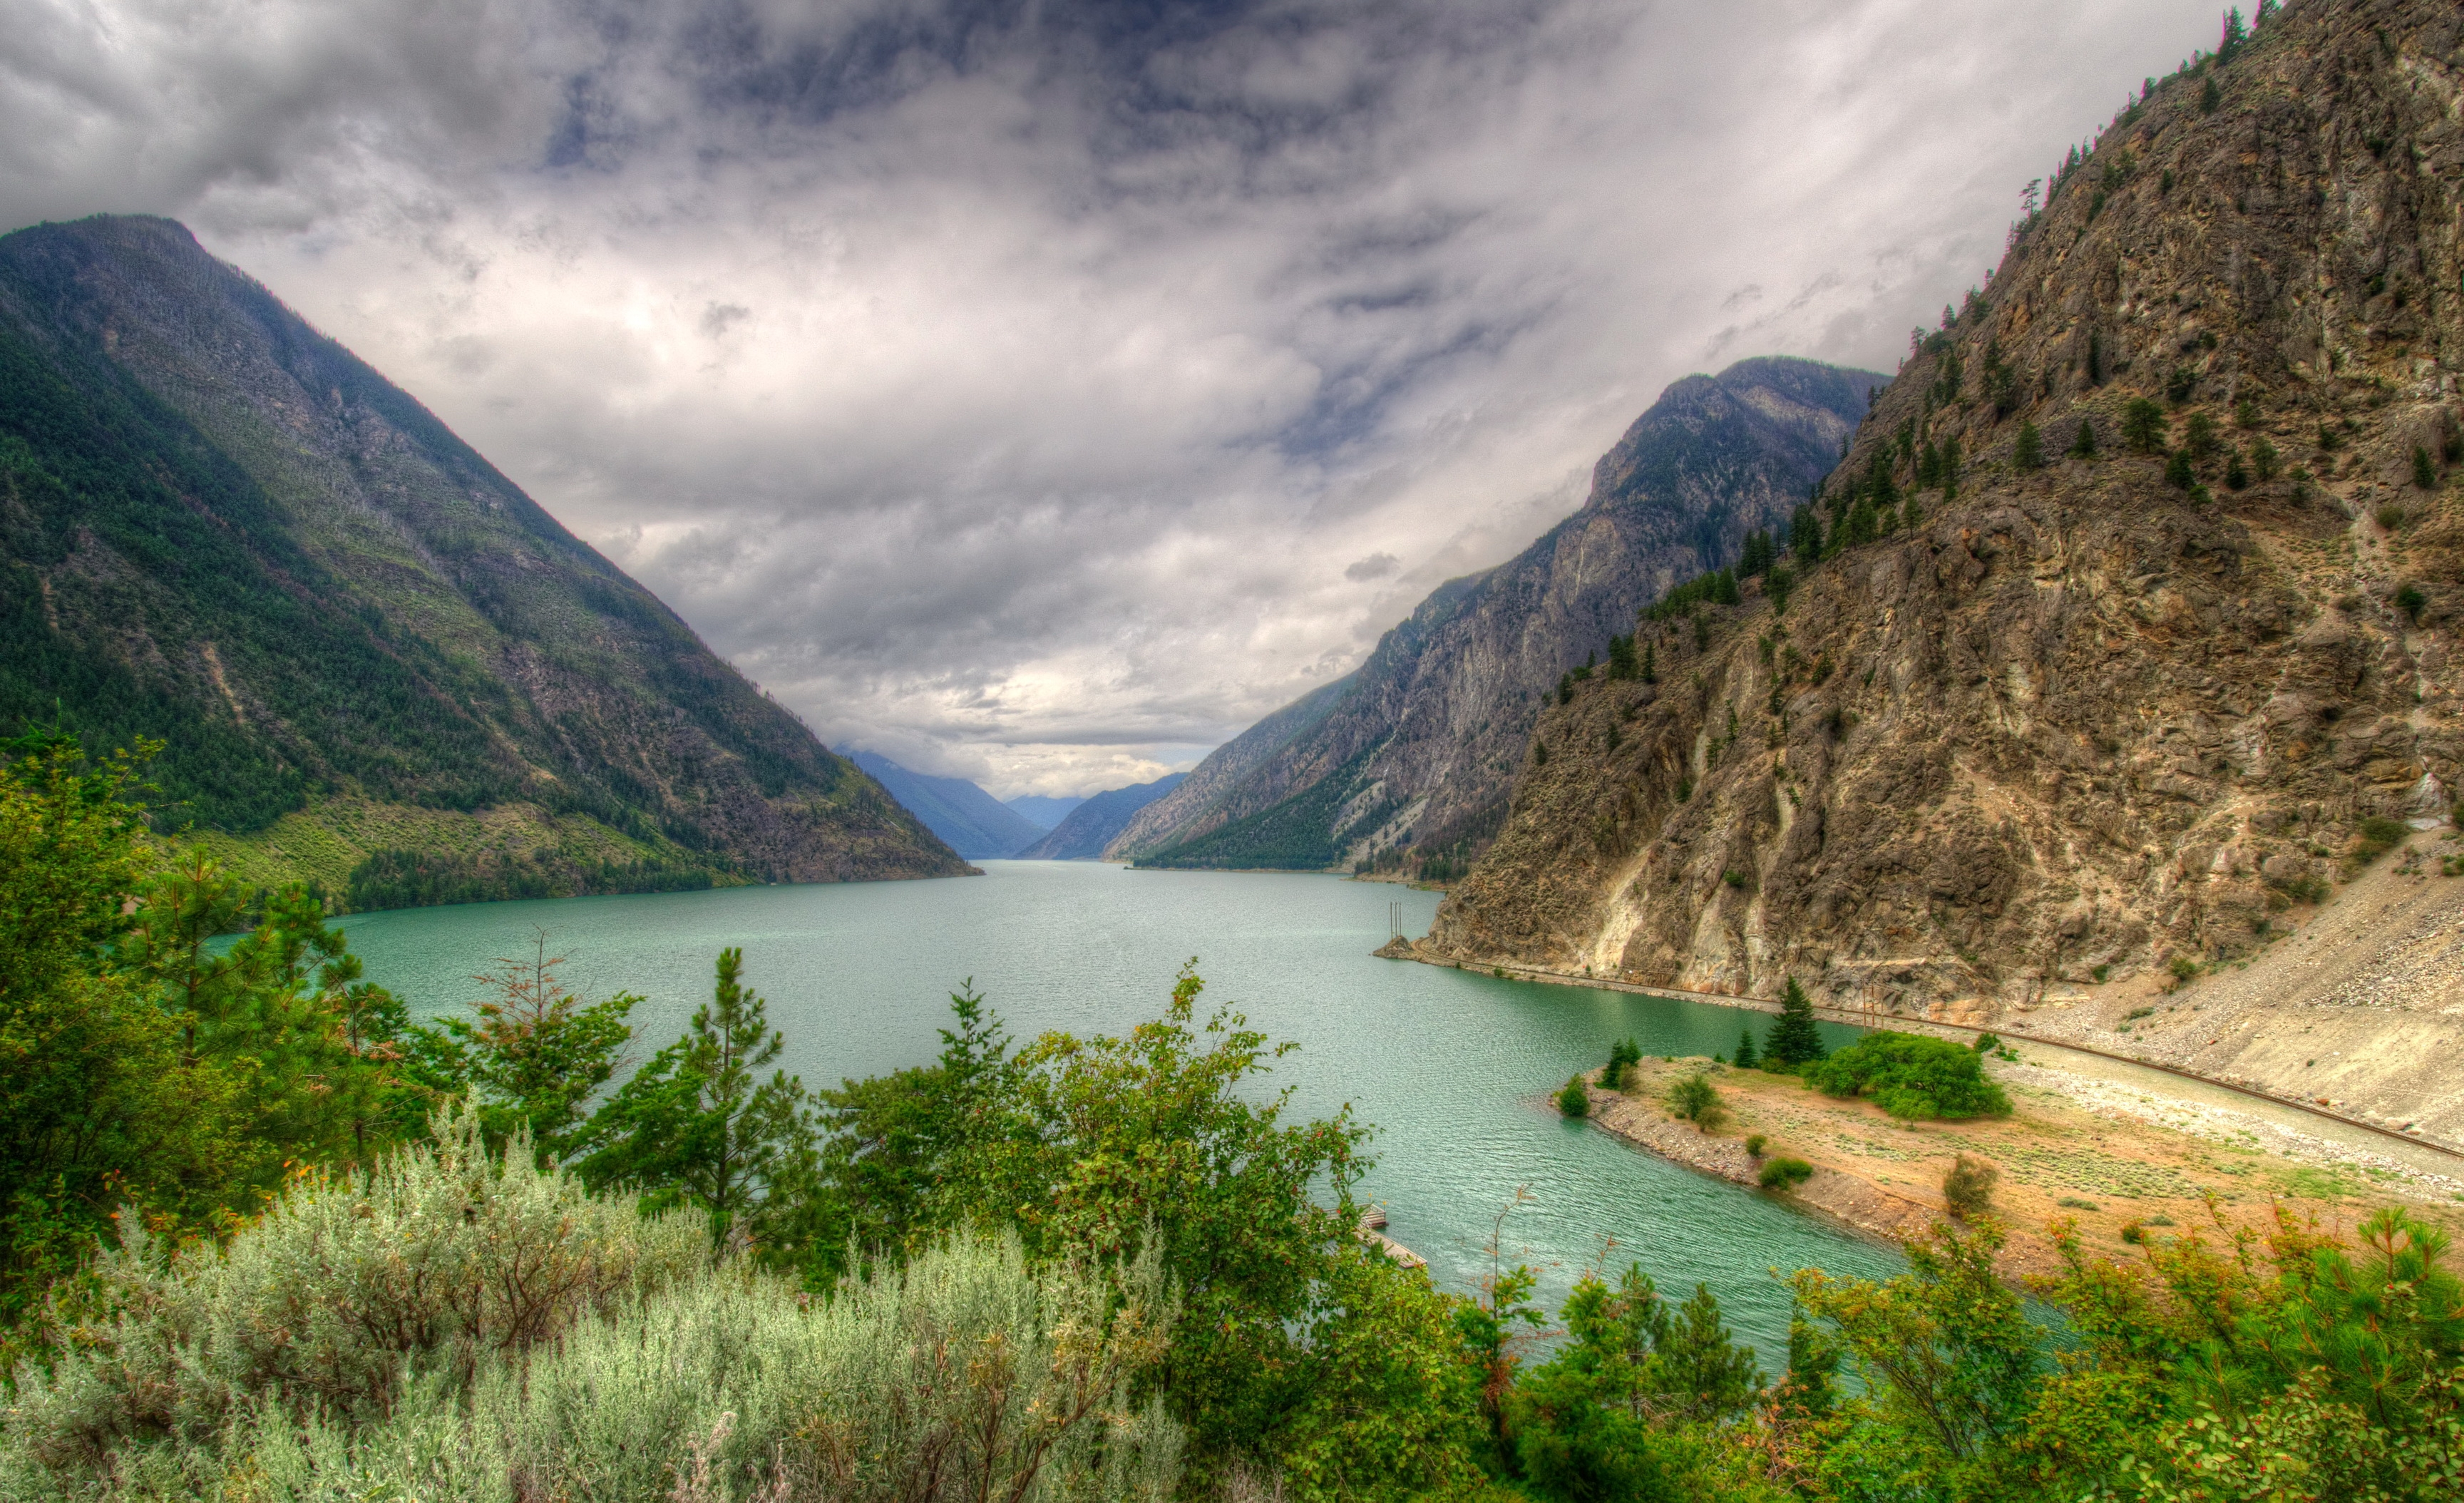 98250 download wallpaper Landscape, Nature, Mountains, Lake, Canada, Hdr, Seton Lillooet screensavers and pictures for free